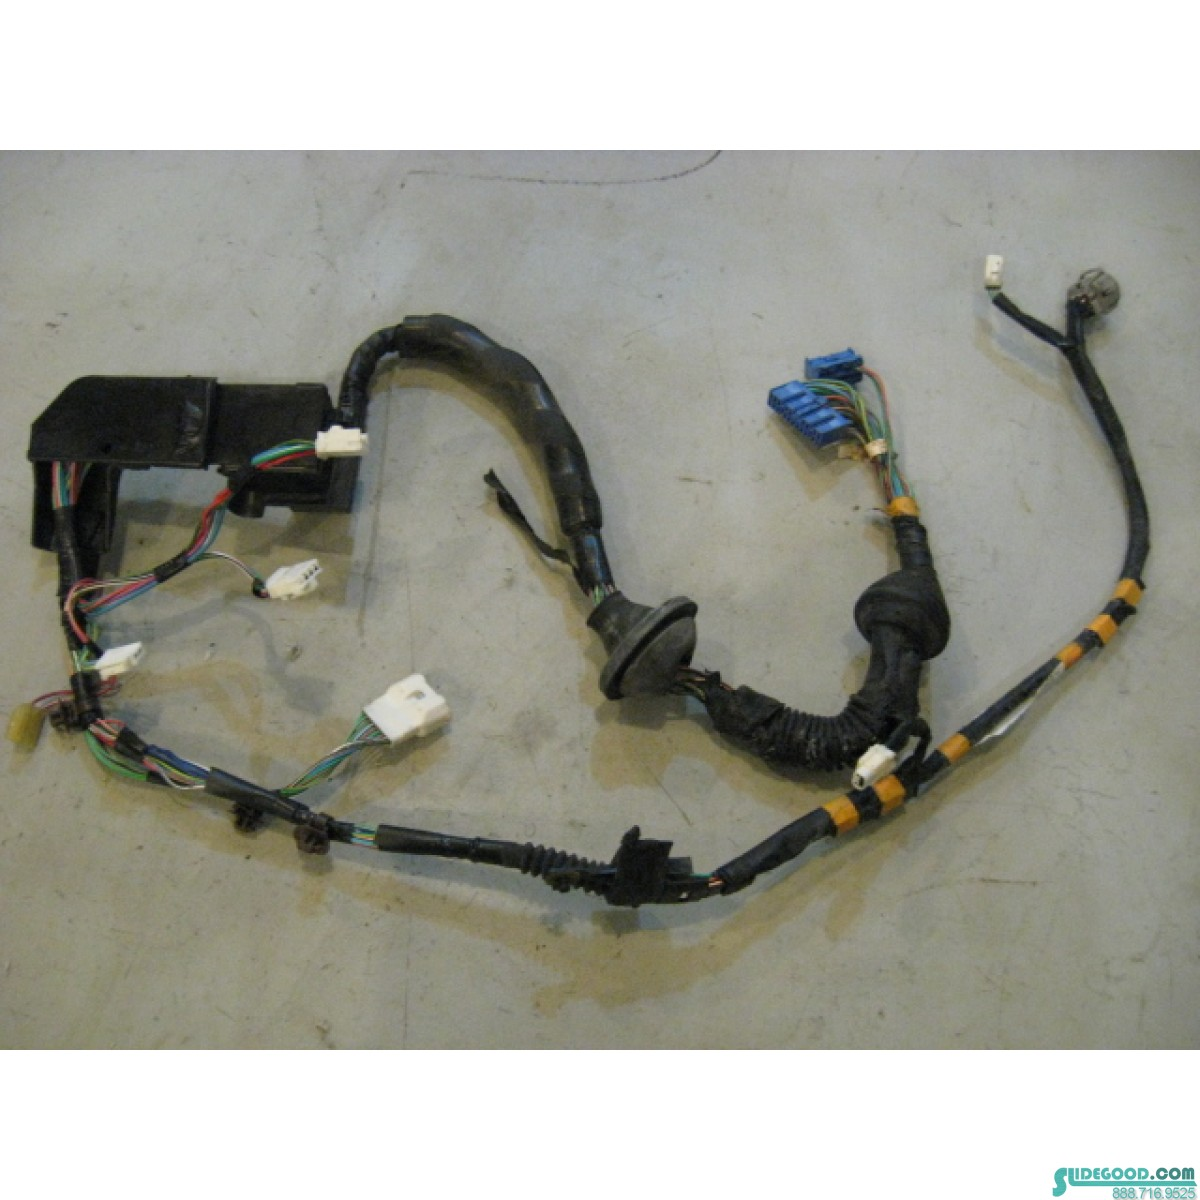 Sc400 Wiring Harness 20 Diagram Images Diagrams 2jz Auto 10773 01 Lexus Rh Passenger Door 82151 24231 R10773 At Cita